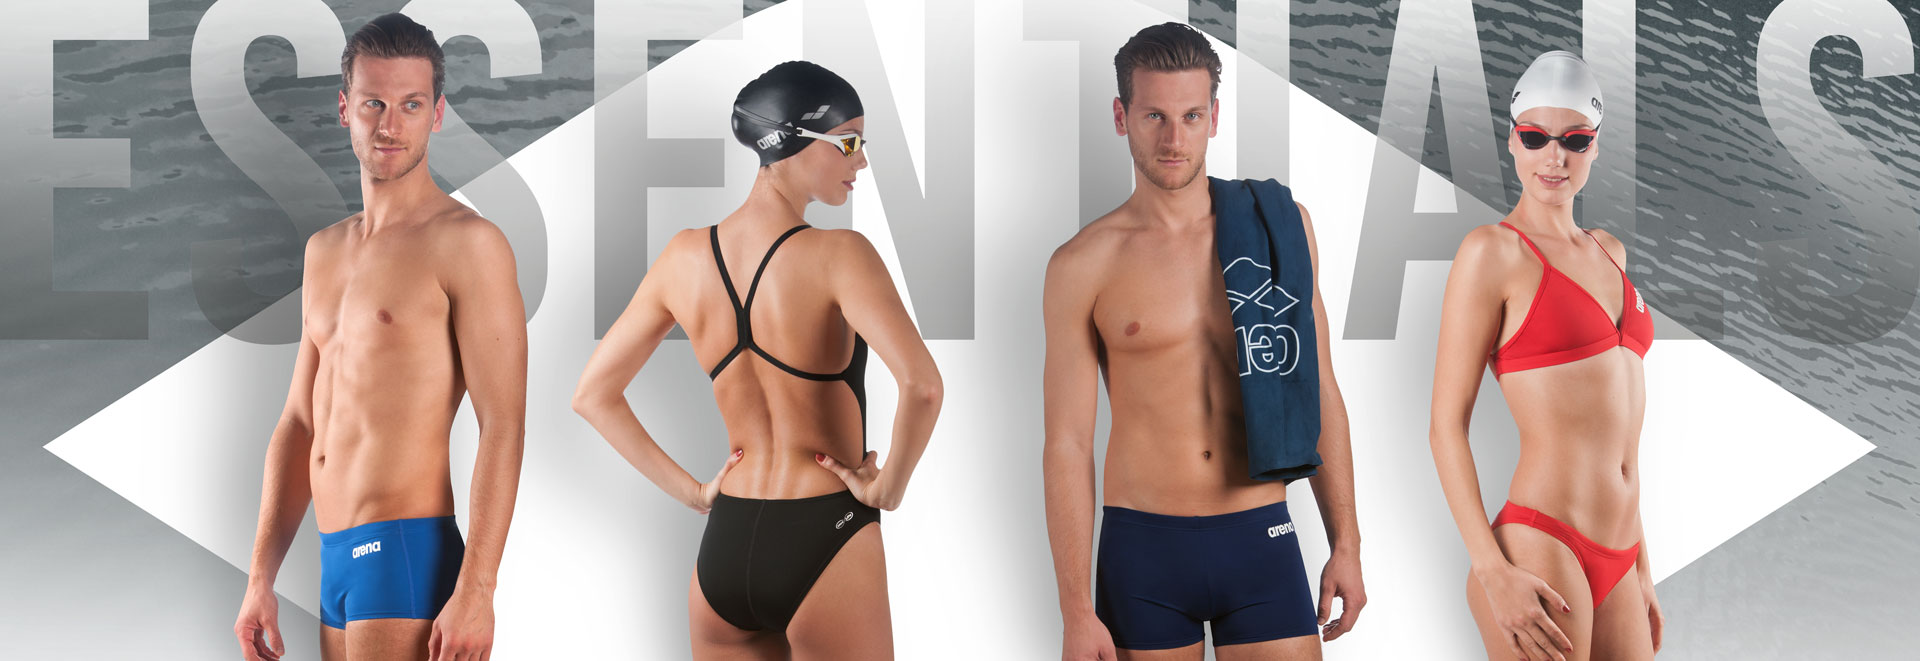 arena essentials costumi da piscina uomo e donna